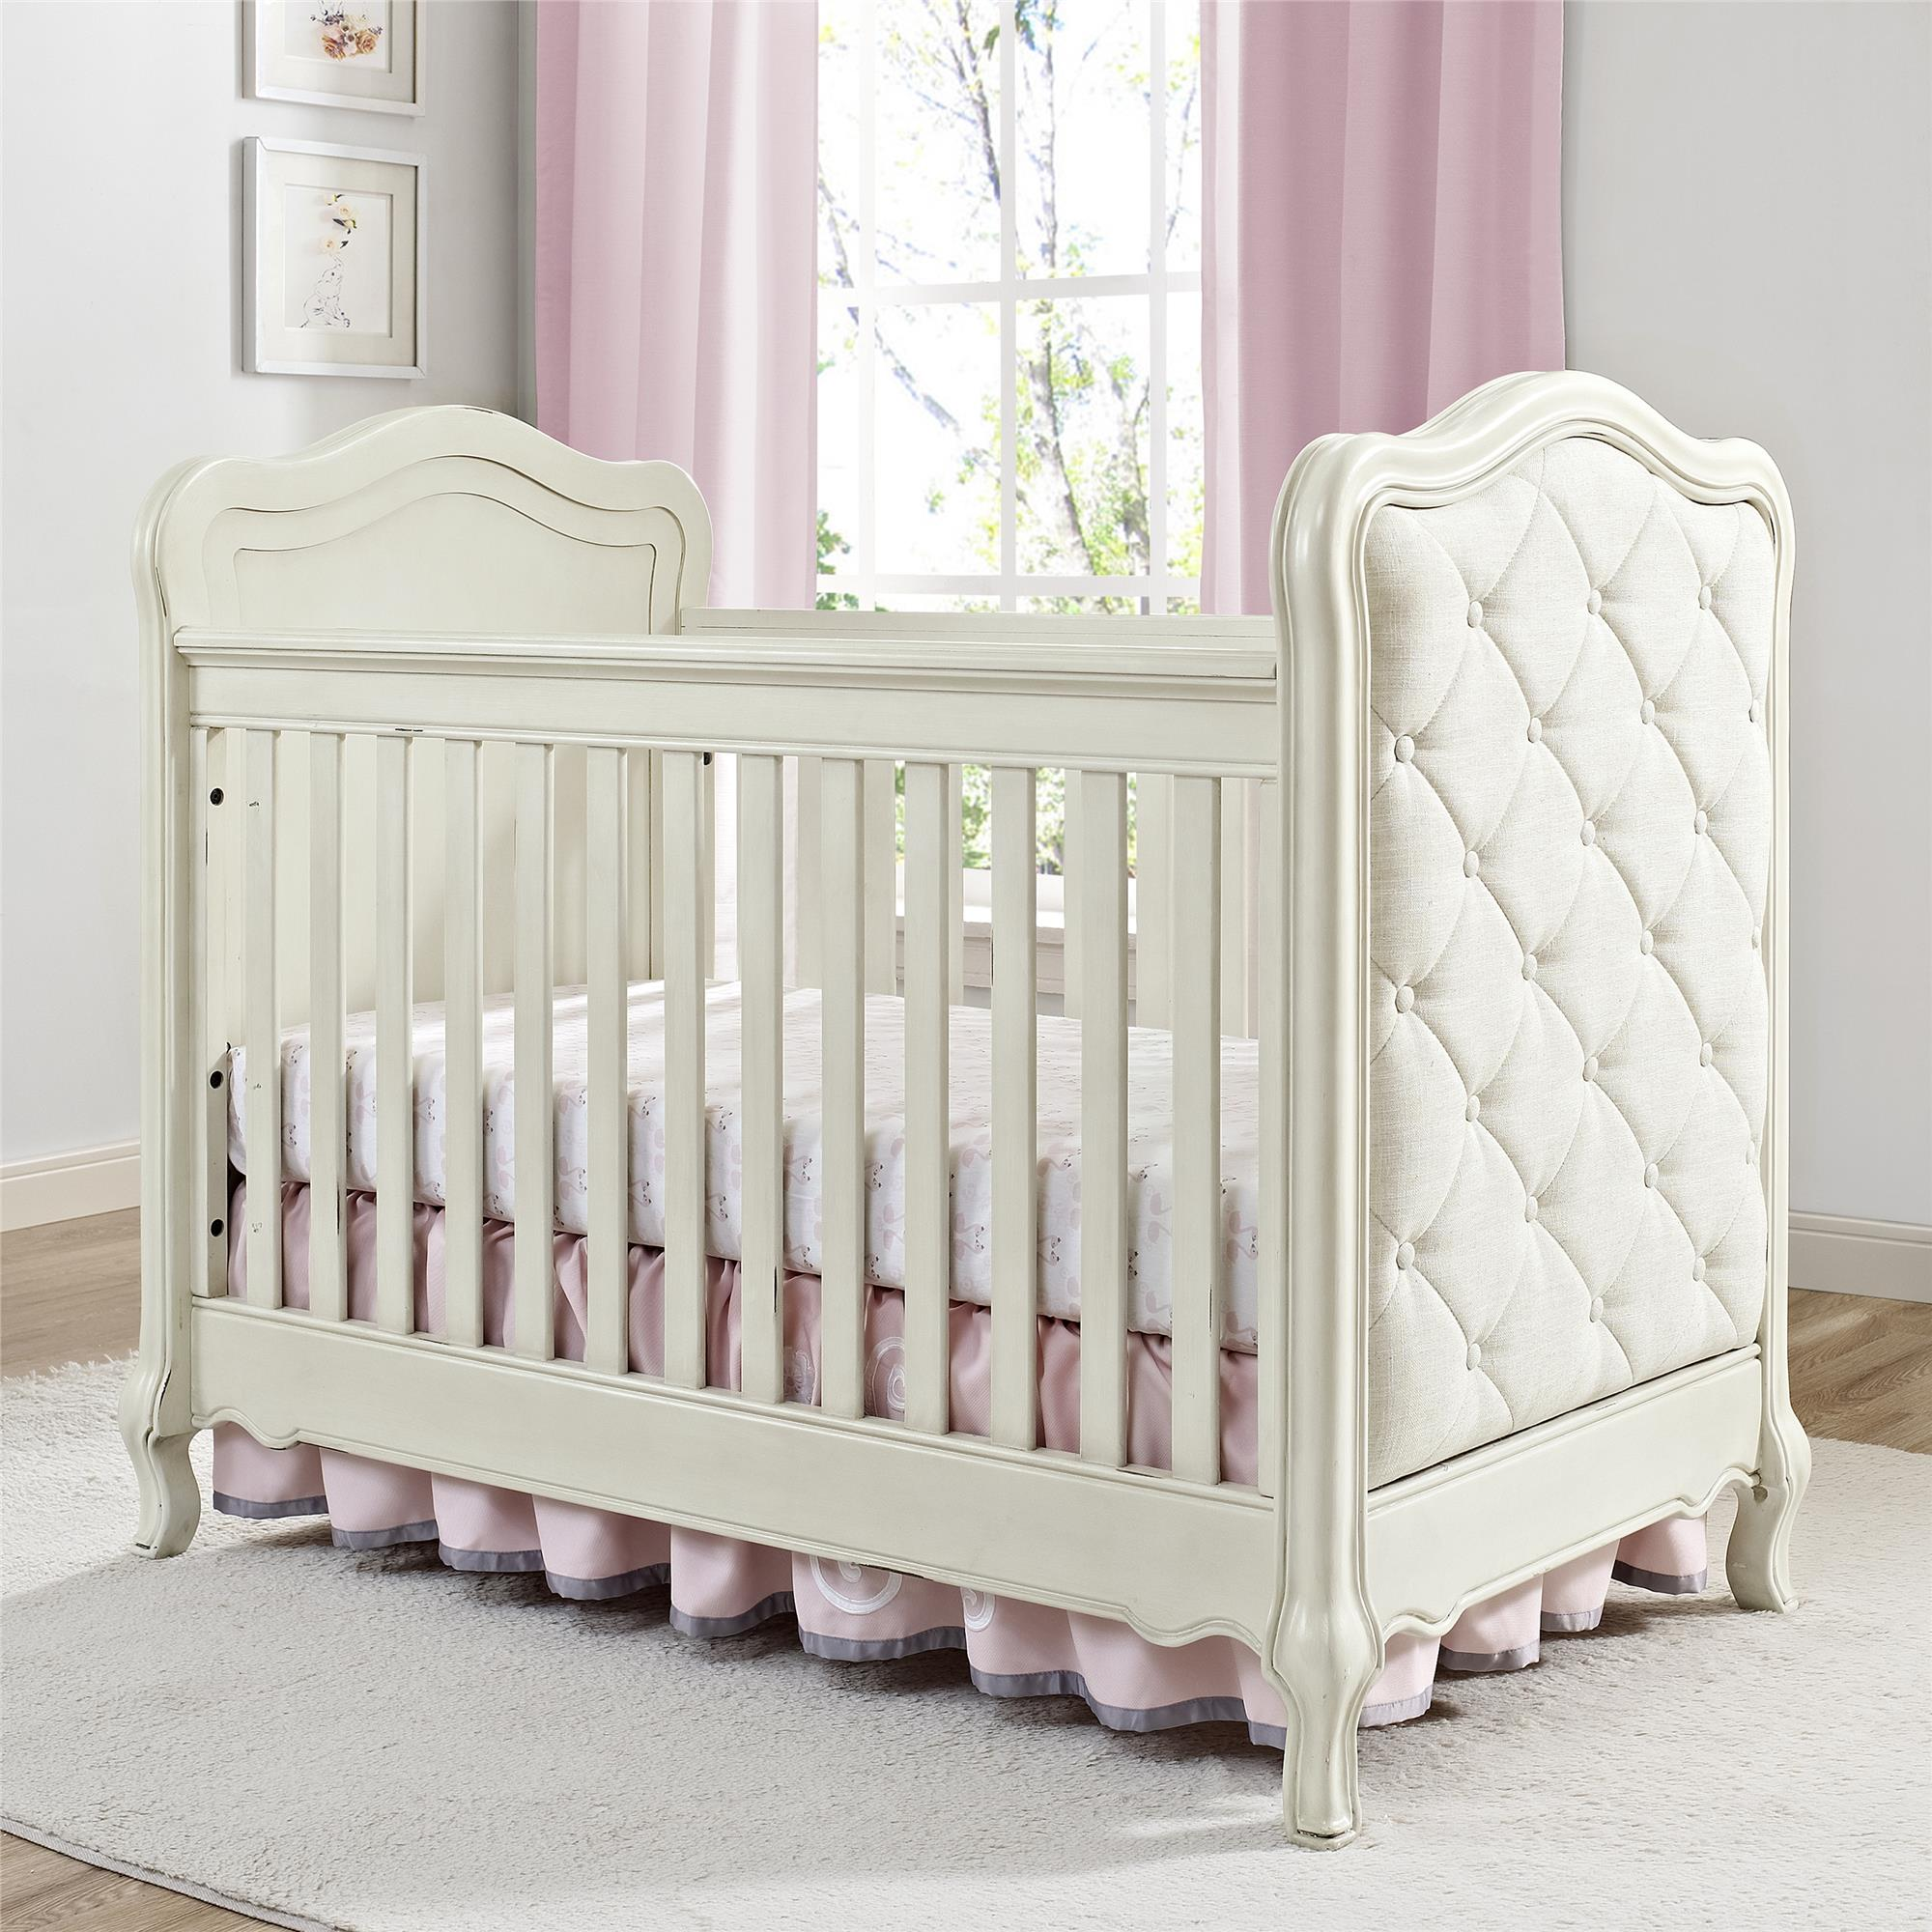 amp r bedding set babies ivy of girl cribs piece lambs us baby crib duchess